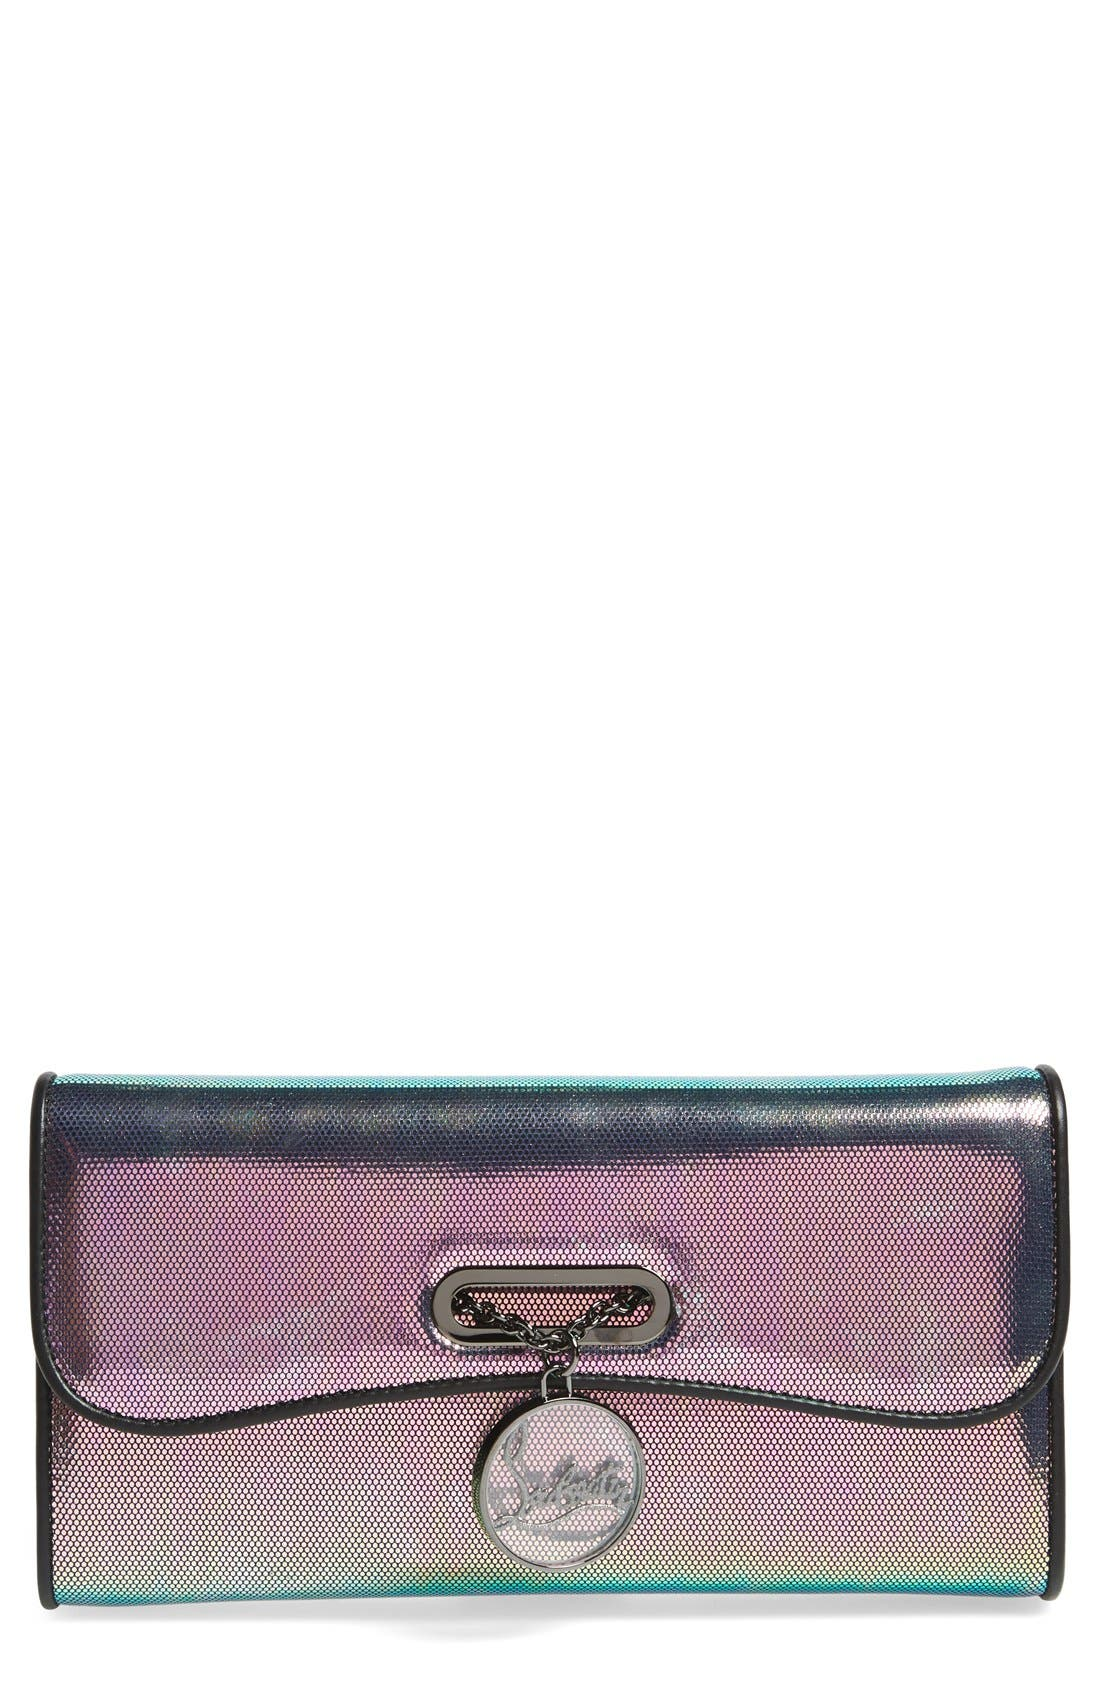 Alternate Image 1 Selected - Christian Louboutin 'Riviera' Clutch